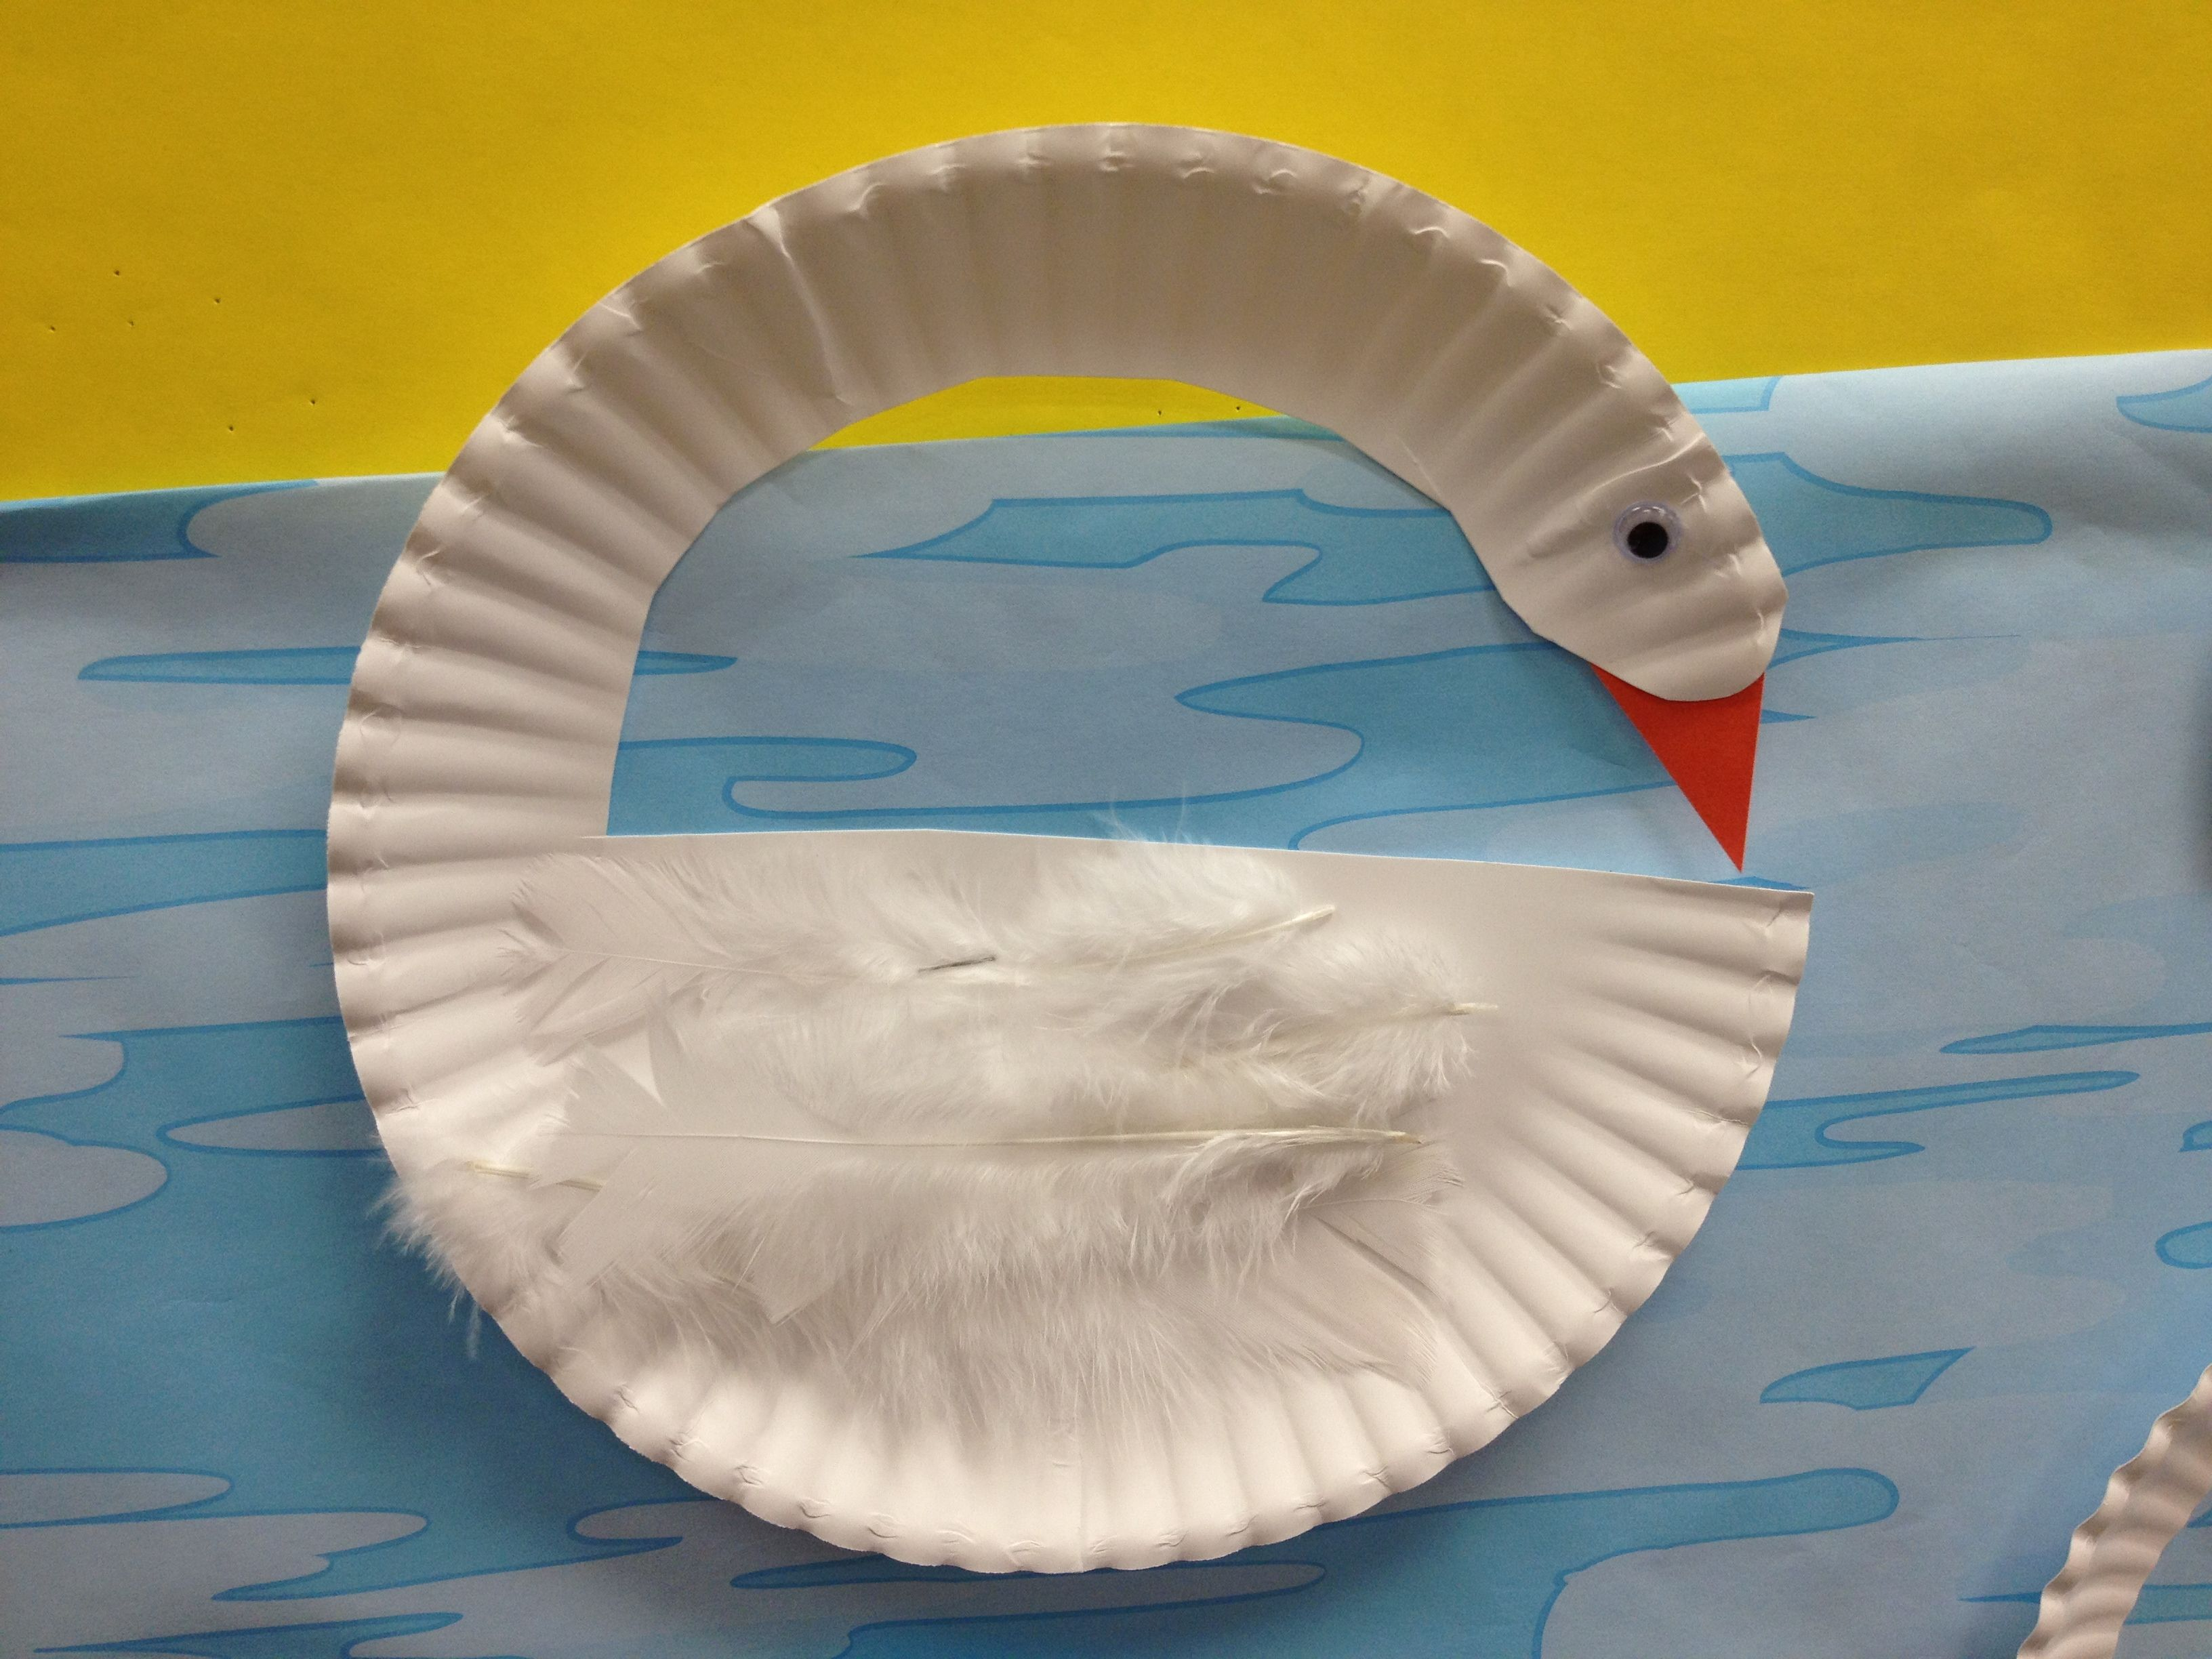 7 easy paper plate crafts to keep kids busy this summer | Hantverk ...